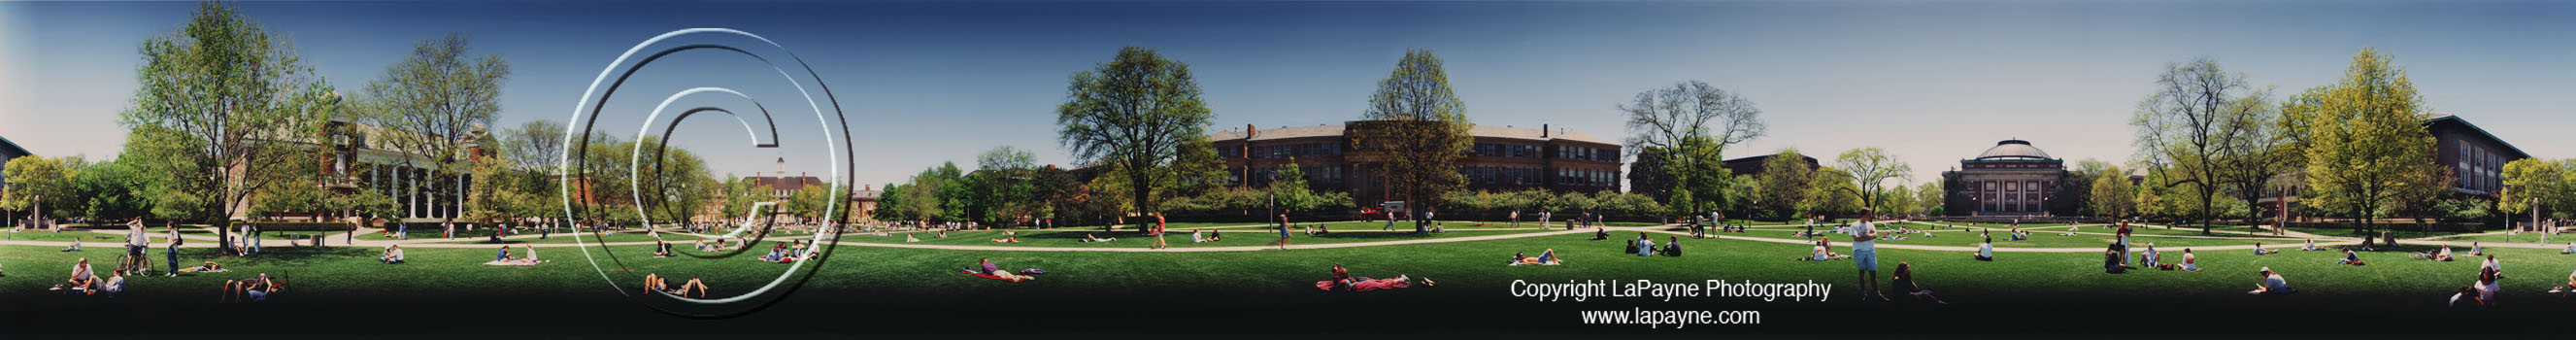 Solar Eclipse on the University of Illinois Quad 1995